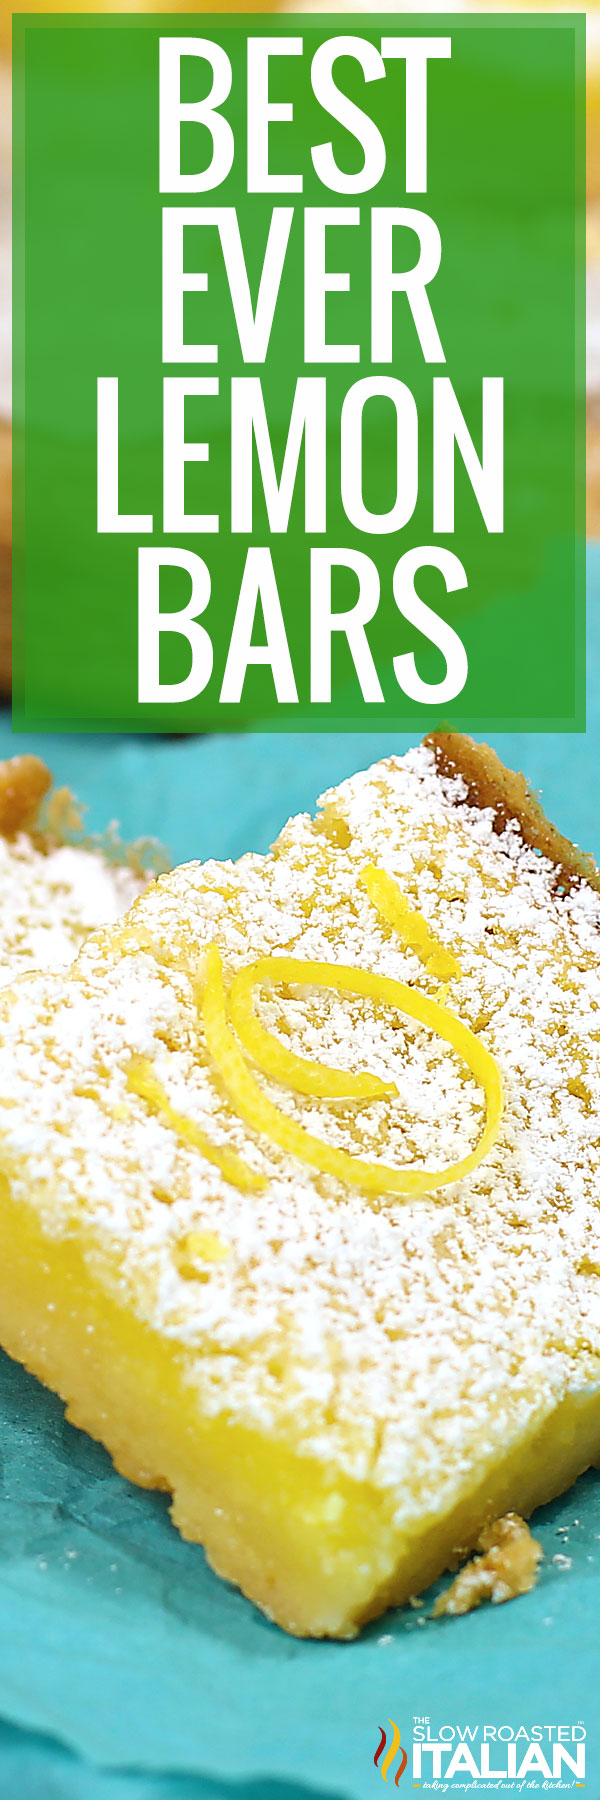 titled photo collage of lemon bars